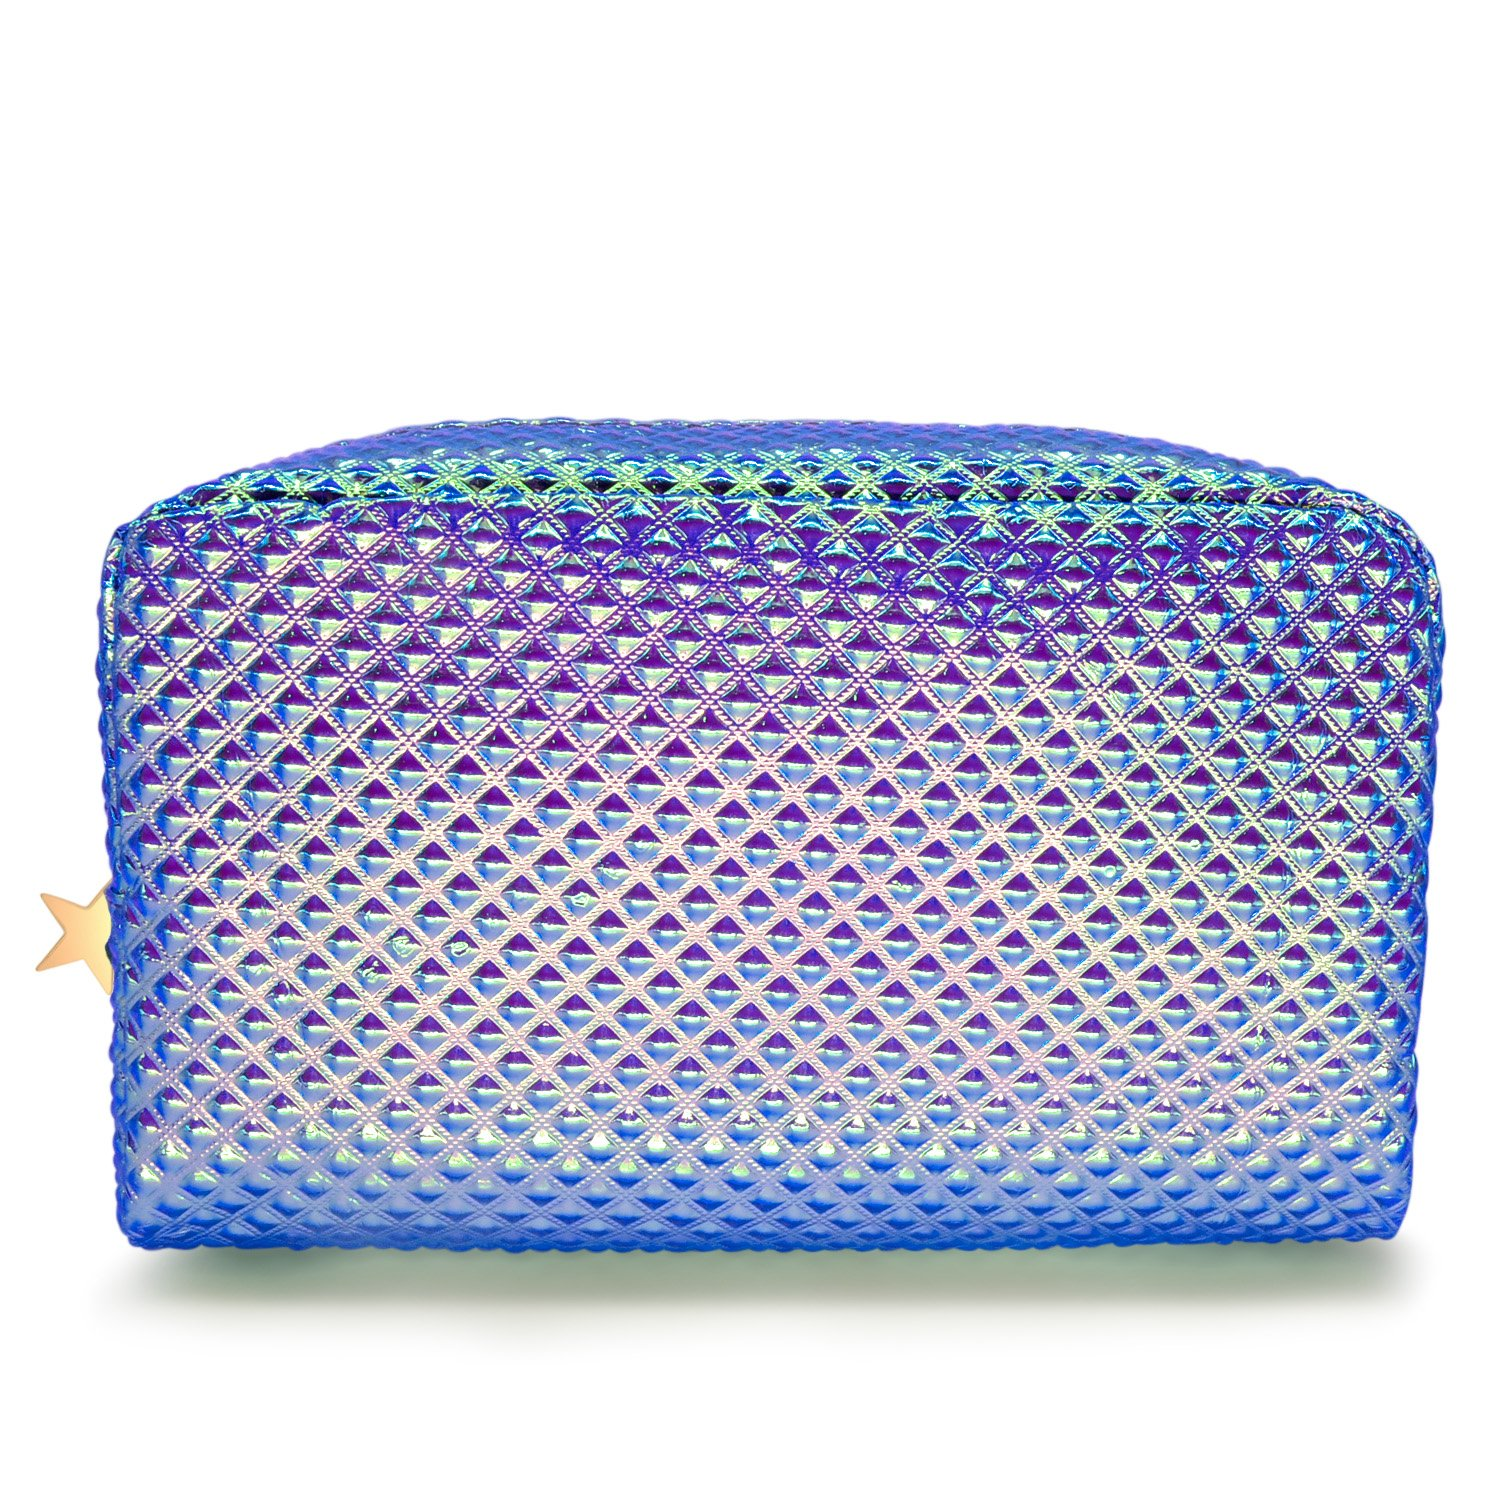 Frebeauty Holographic Cosmetic Bag Makeup Bag Toiletry Travel Bag Handy Large Protable Wash Pouch Waterproof Zipper Handbag Carry Case Organizer Mermaid Makeup Brush Bag(Shiny Purple Bag) by Frebeauty